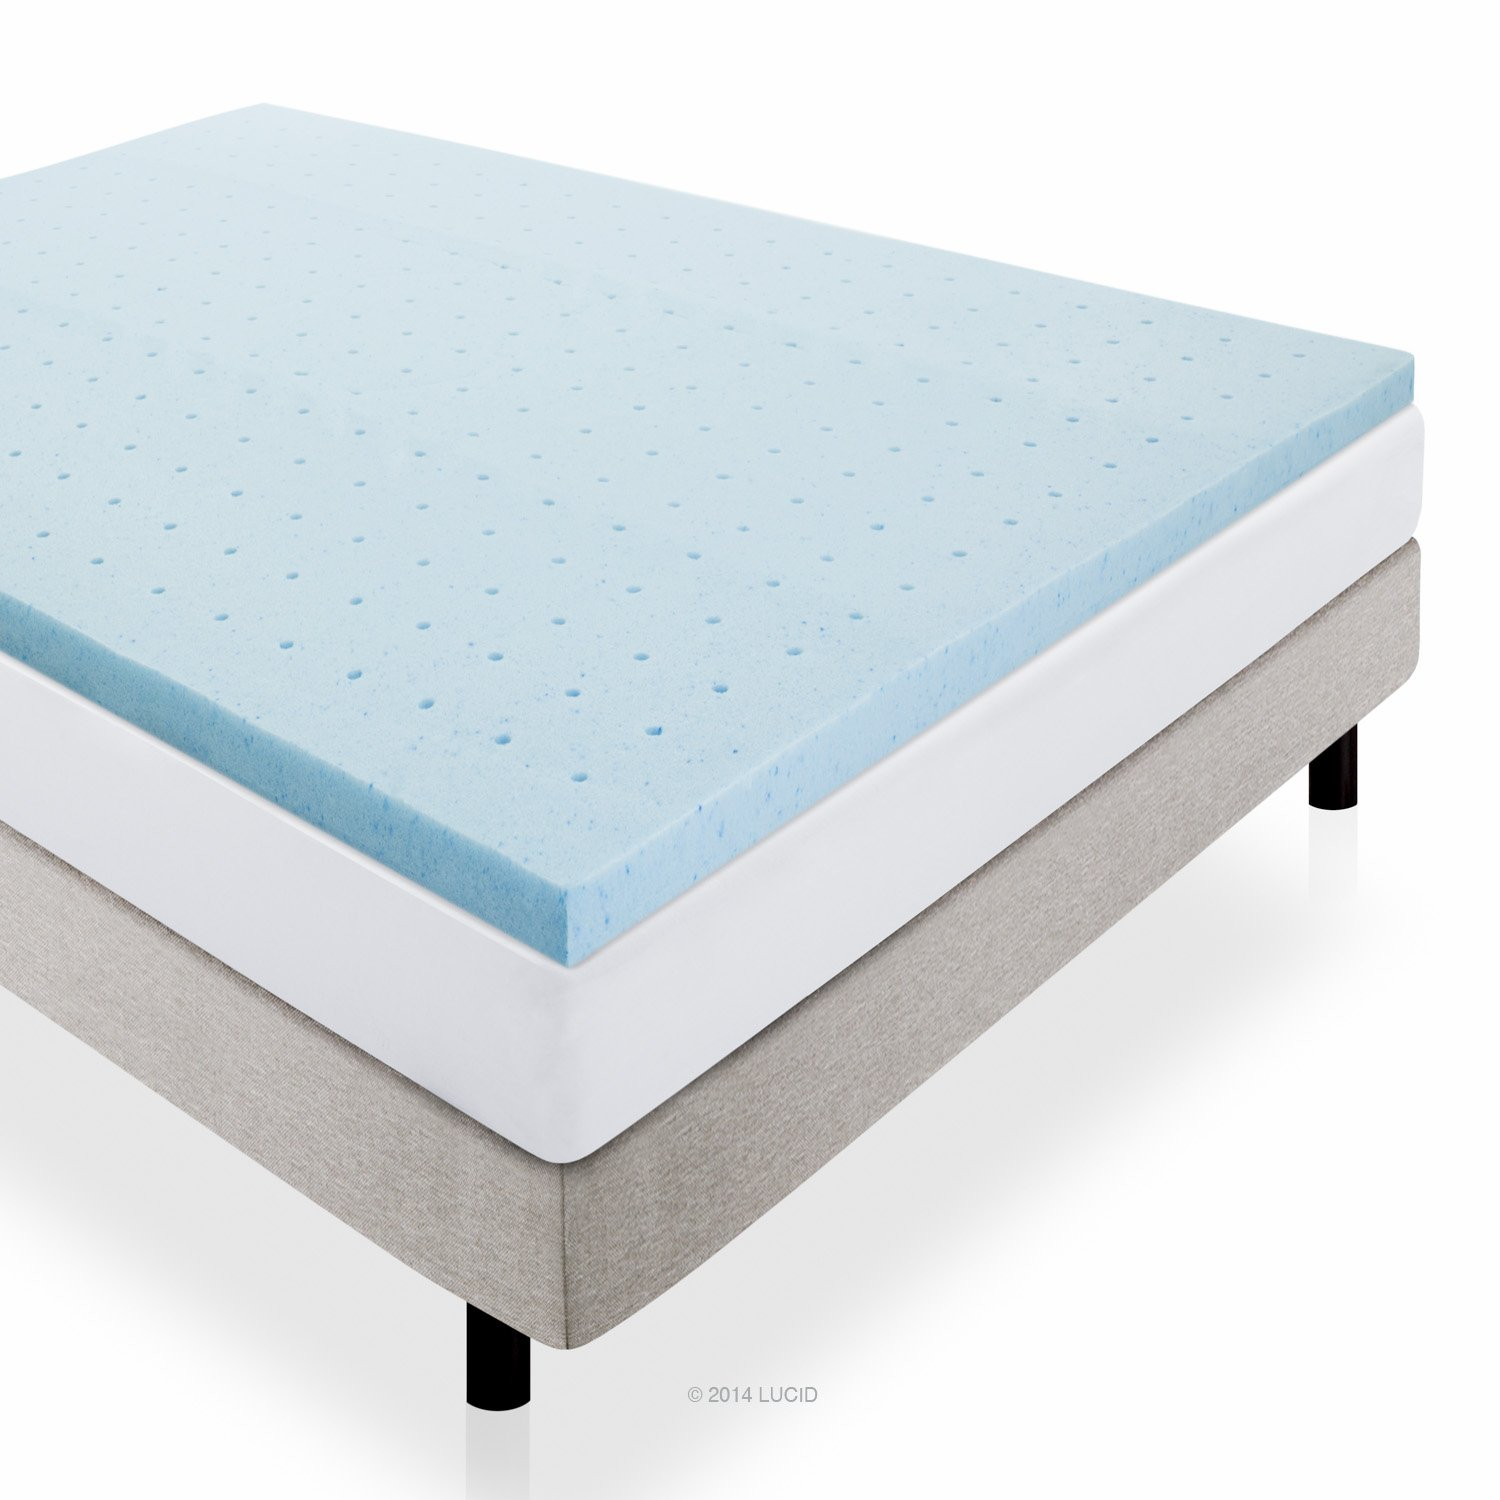 LUCID 2 Gel Infused Ventilated Memory Foam Mattress Topper, Queen